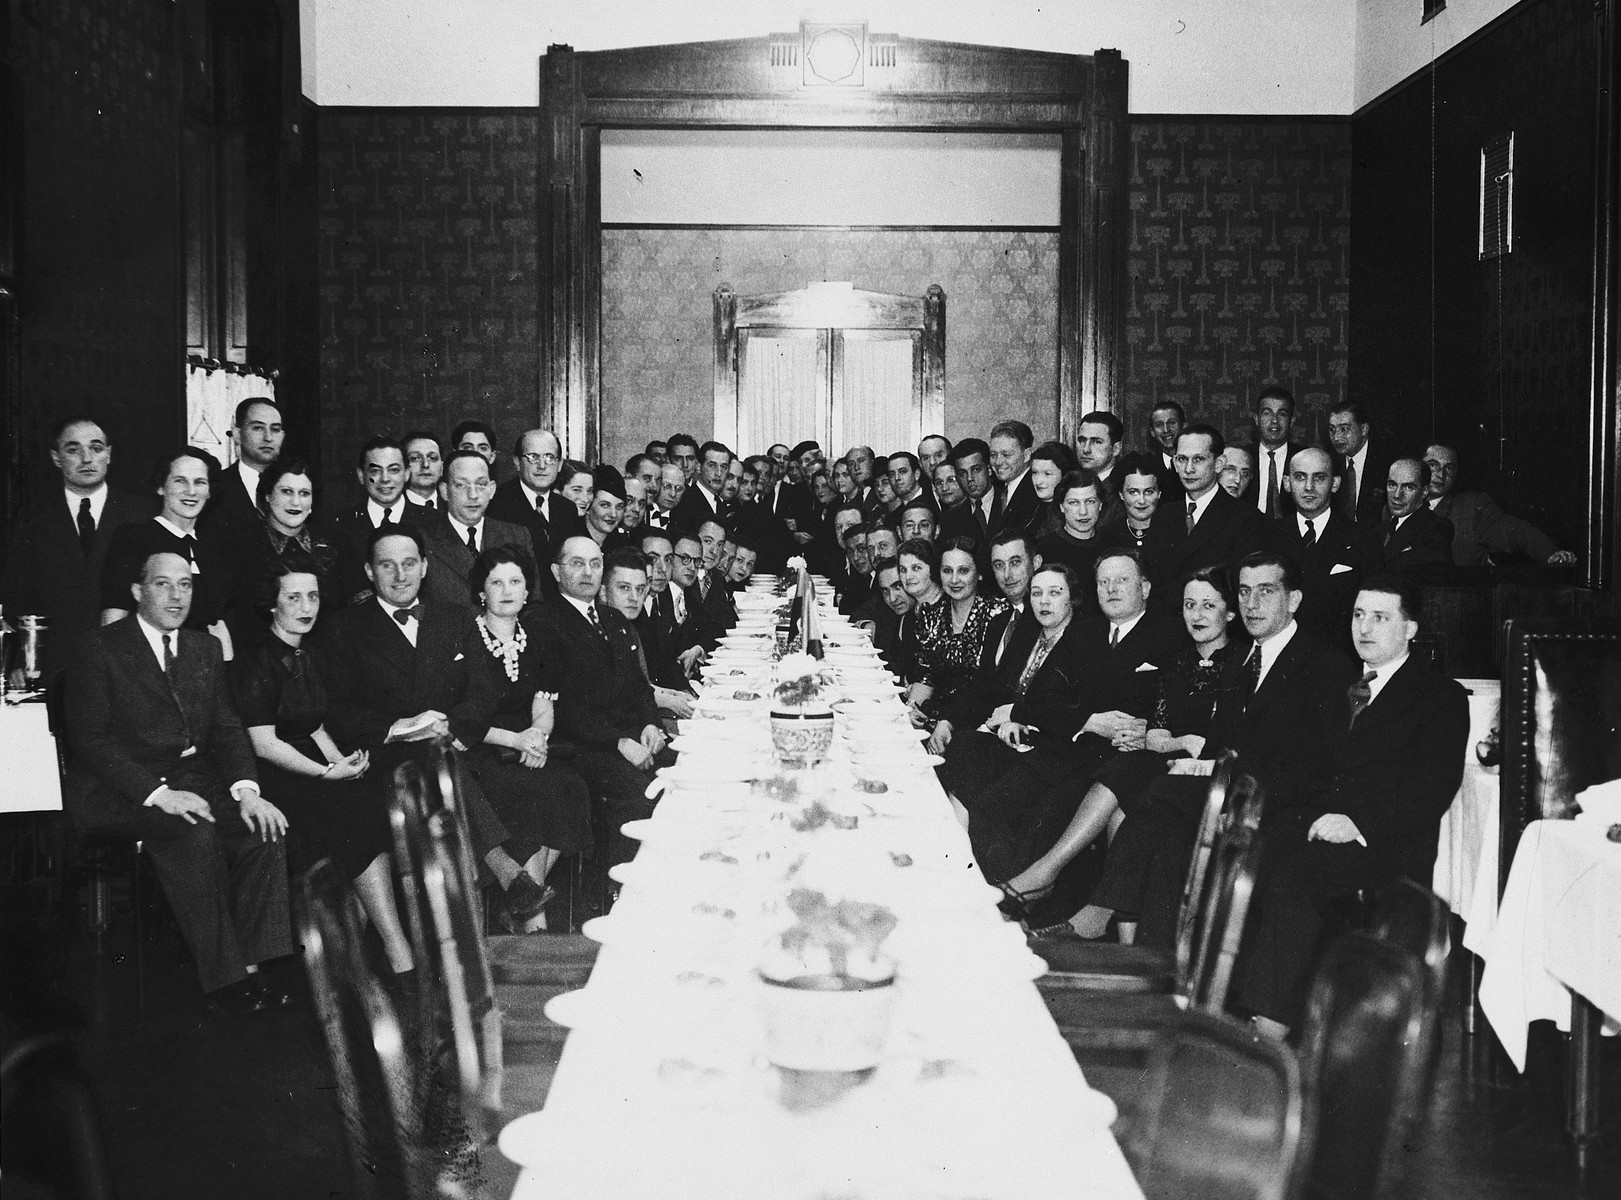 Czech Jews attend a formal banquet celebrating the anniversary of the founding of Hagibor sports club.